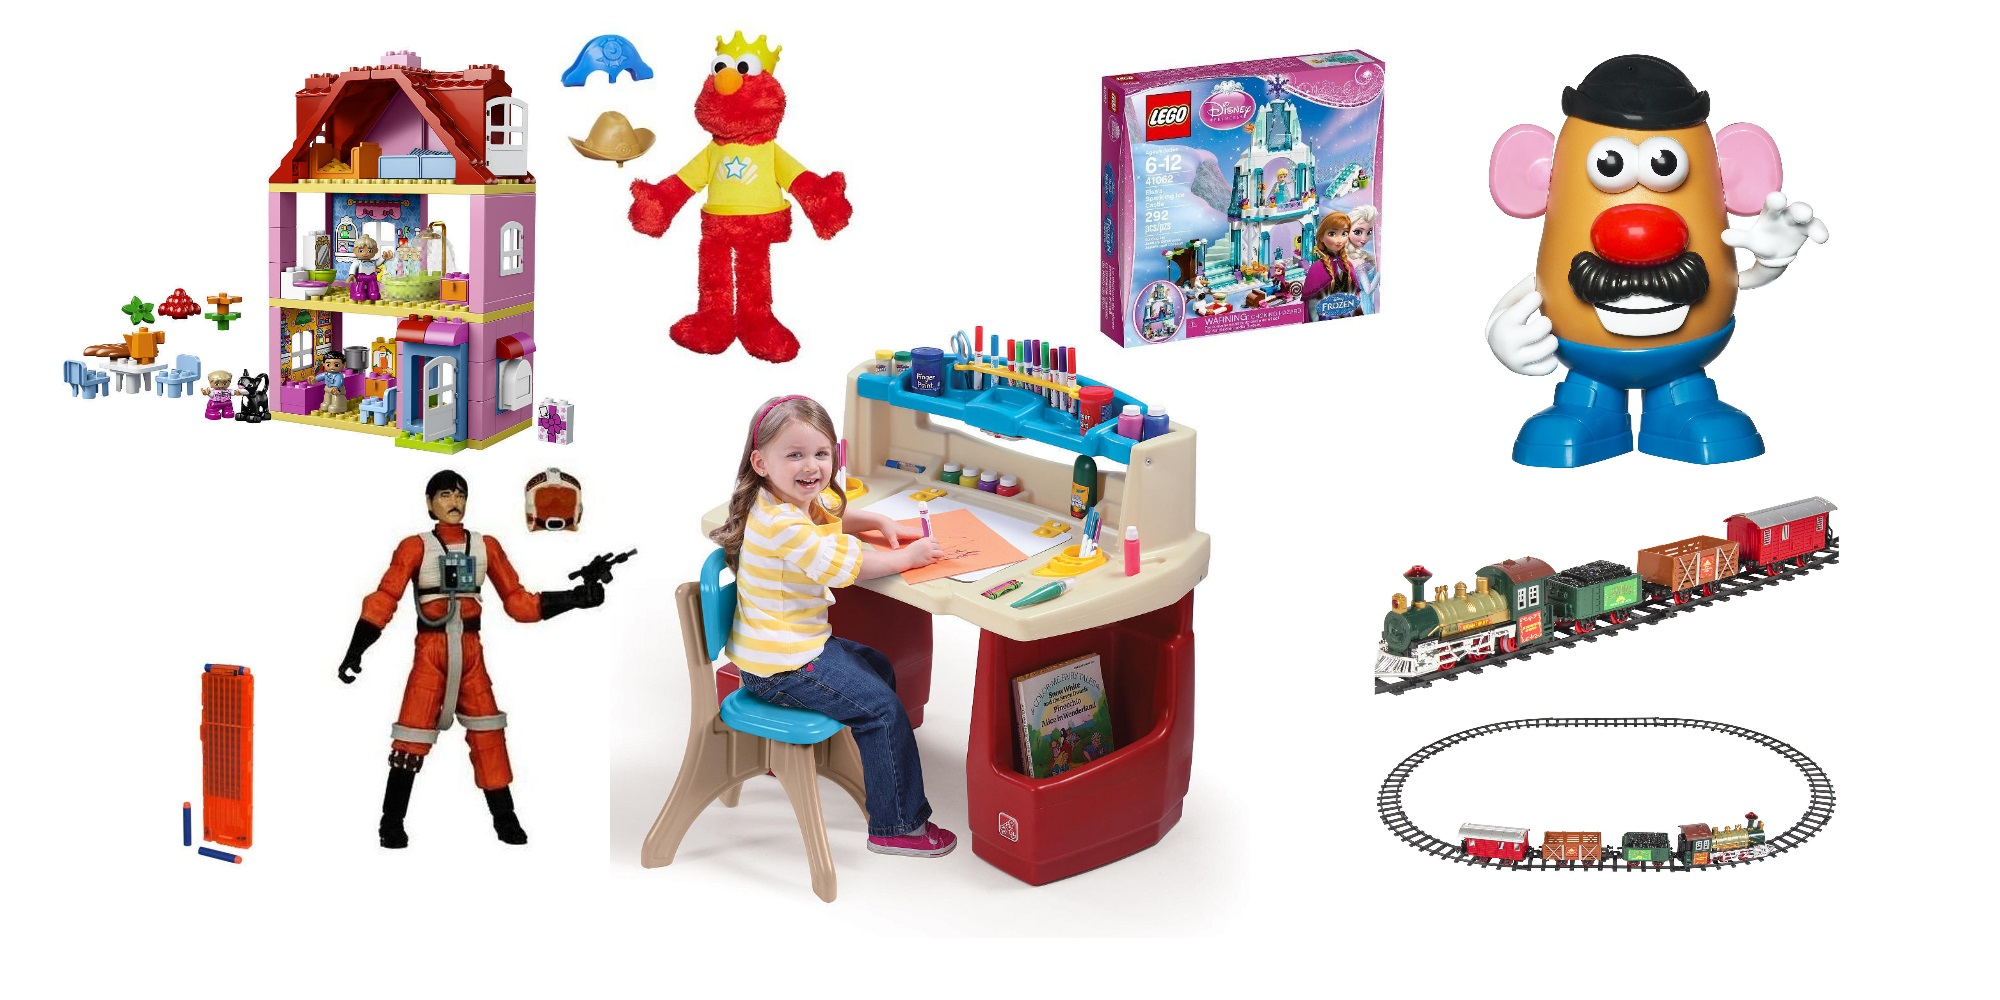 Your Holiday Ping With Some Awesome Toy Deals On Ebayawesome Ebay Right Now There Are Tons Of Great Markdowns Things Like Lego